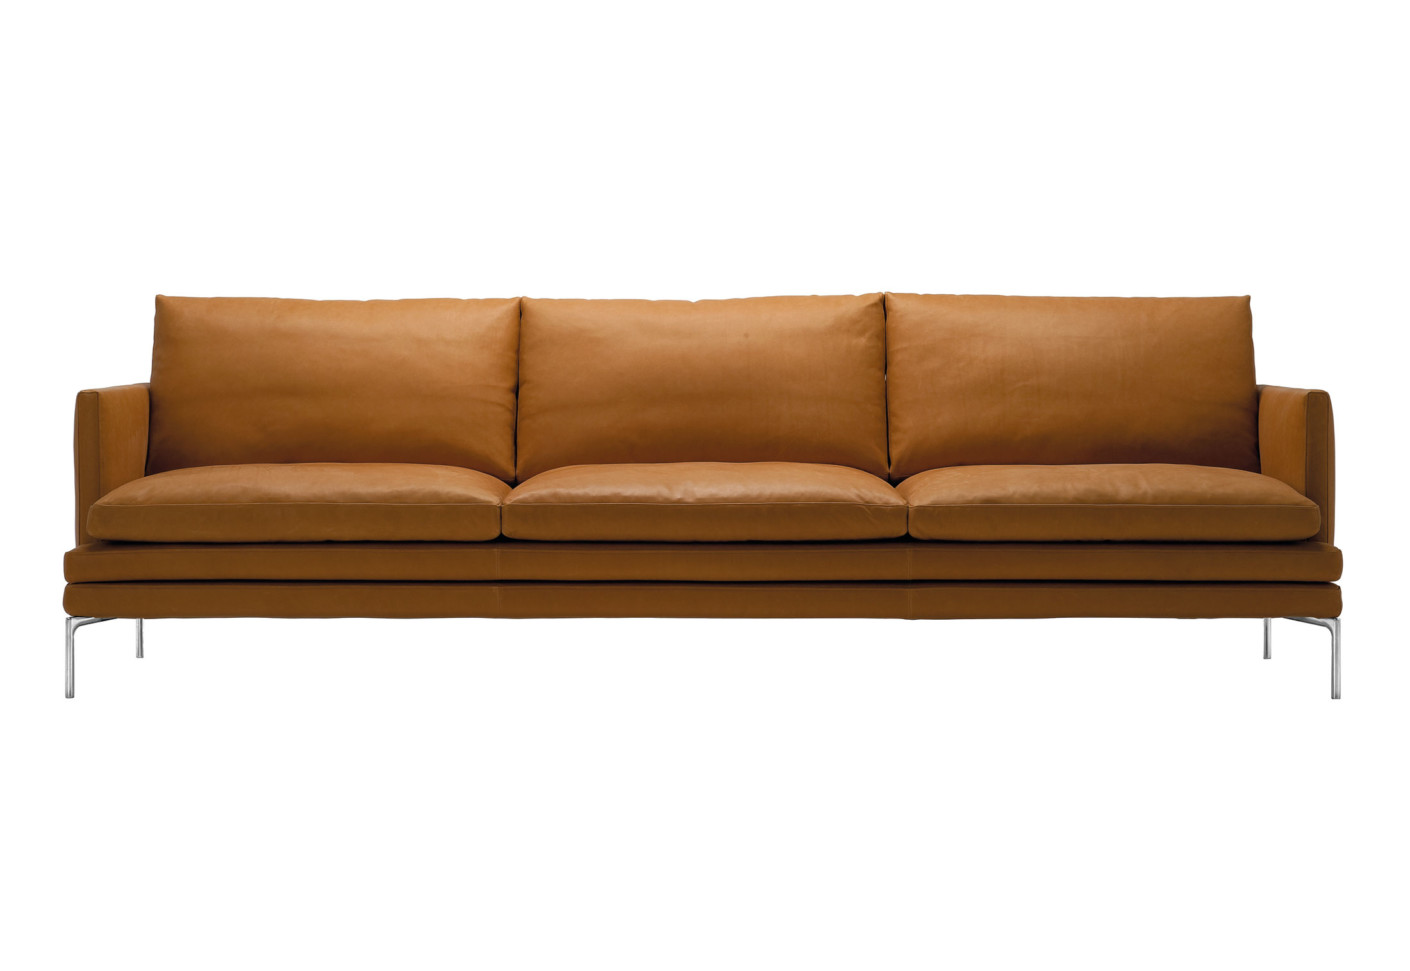 1330 WILLIAM sofa by Zanotta STYLEPARK : 1330 william sofa 3 from www.stylepark.com size 1410 x 971 jpeg 87kB